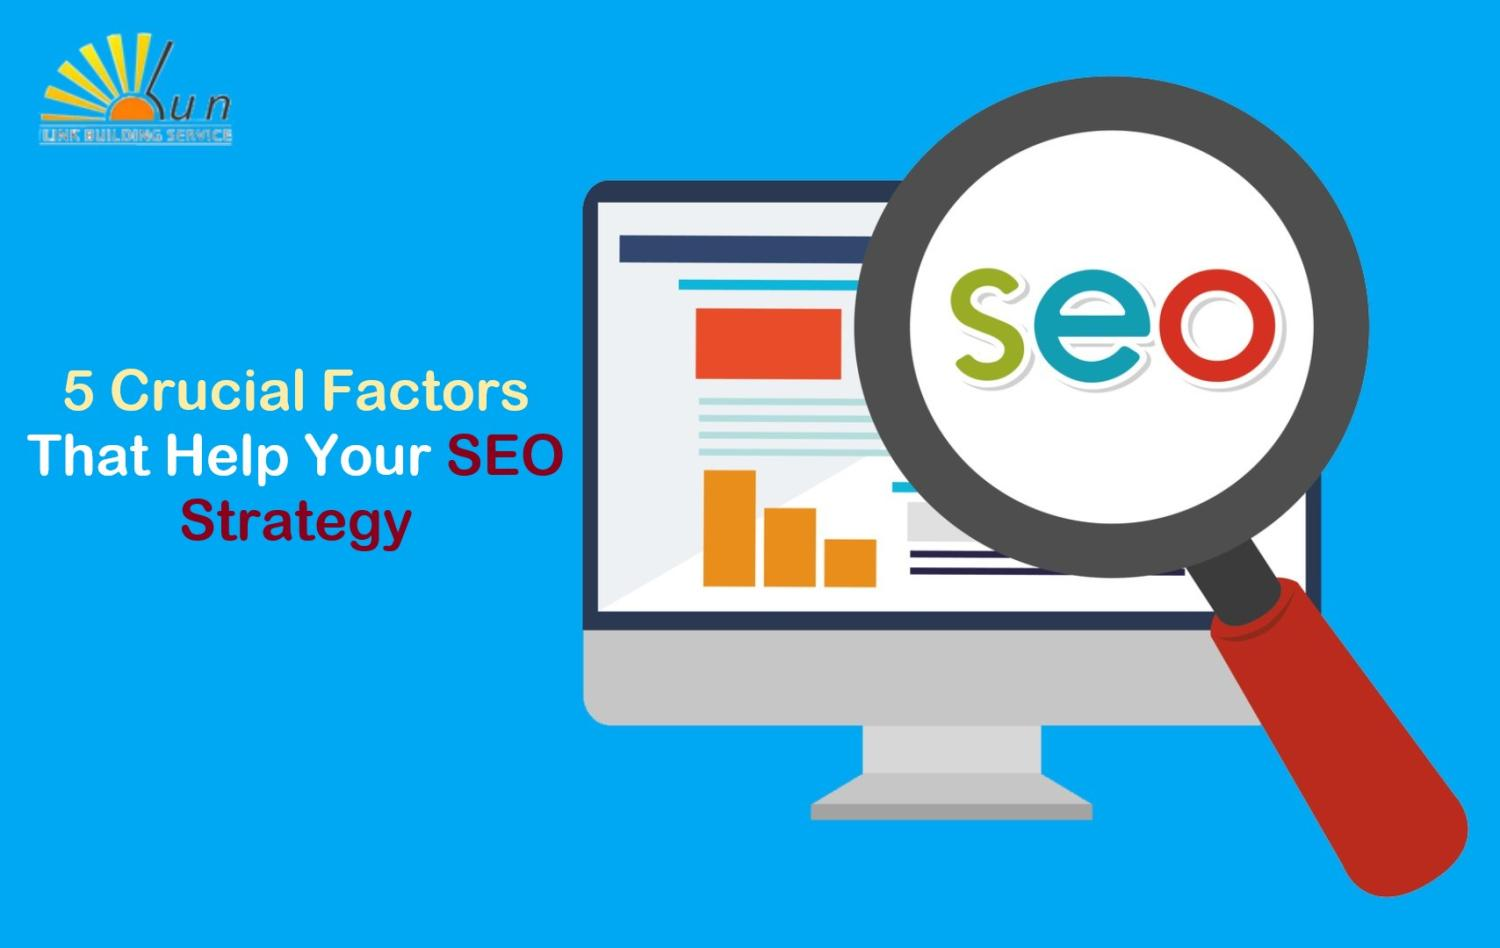 5 Crucial Factors That Help Your SEO Strategy